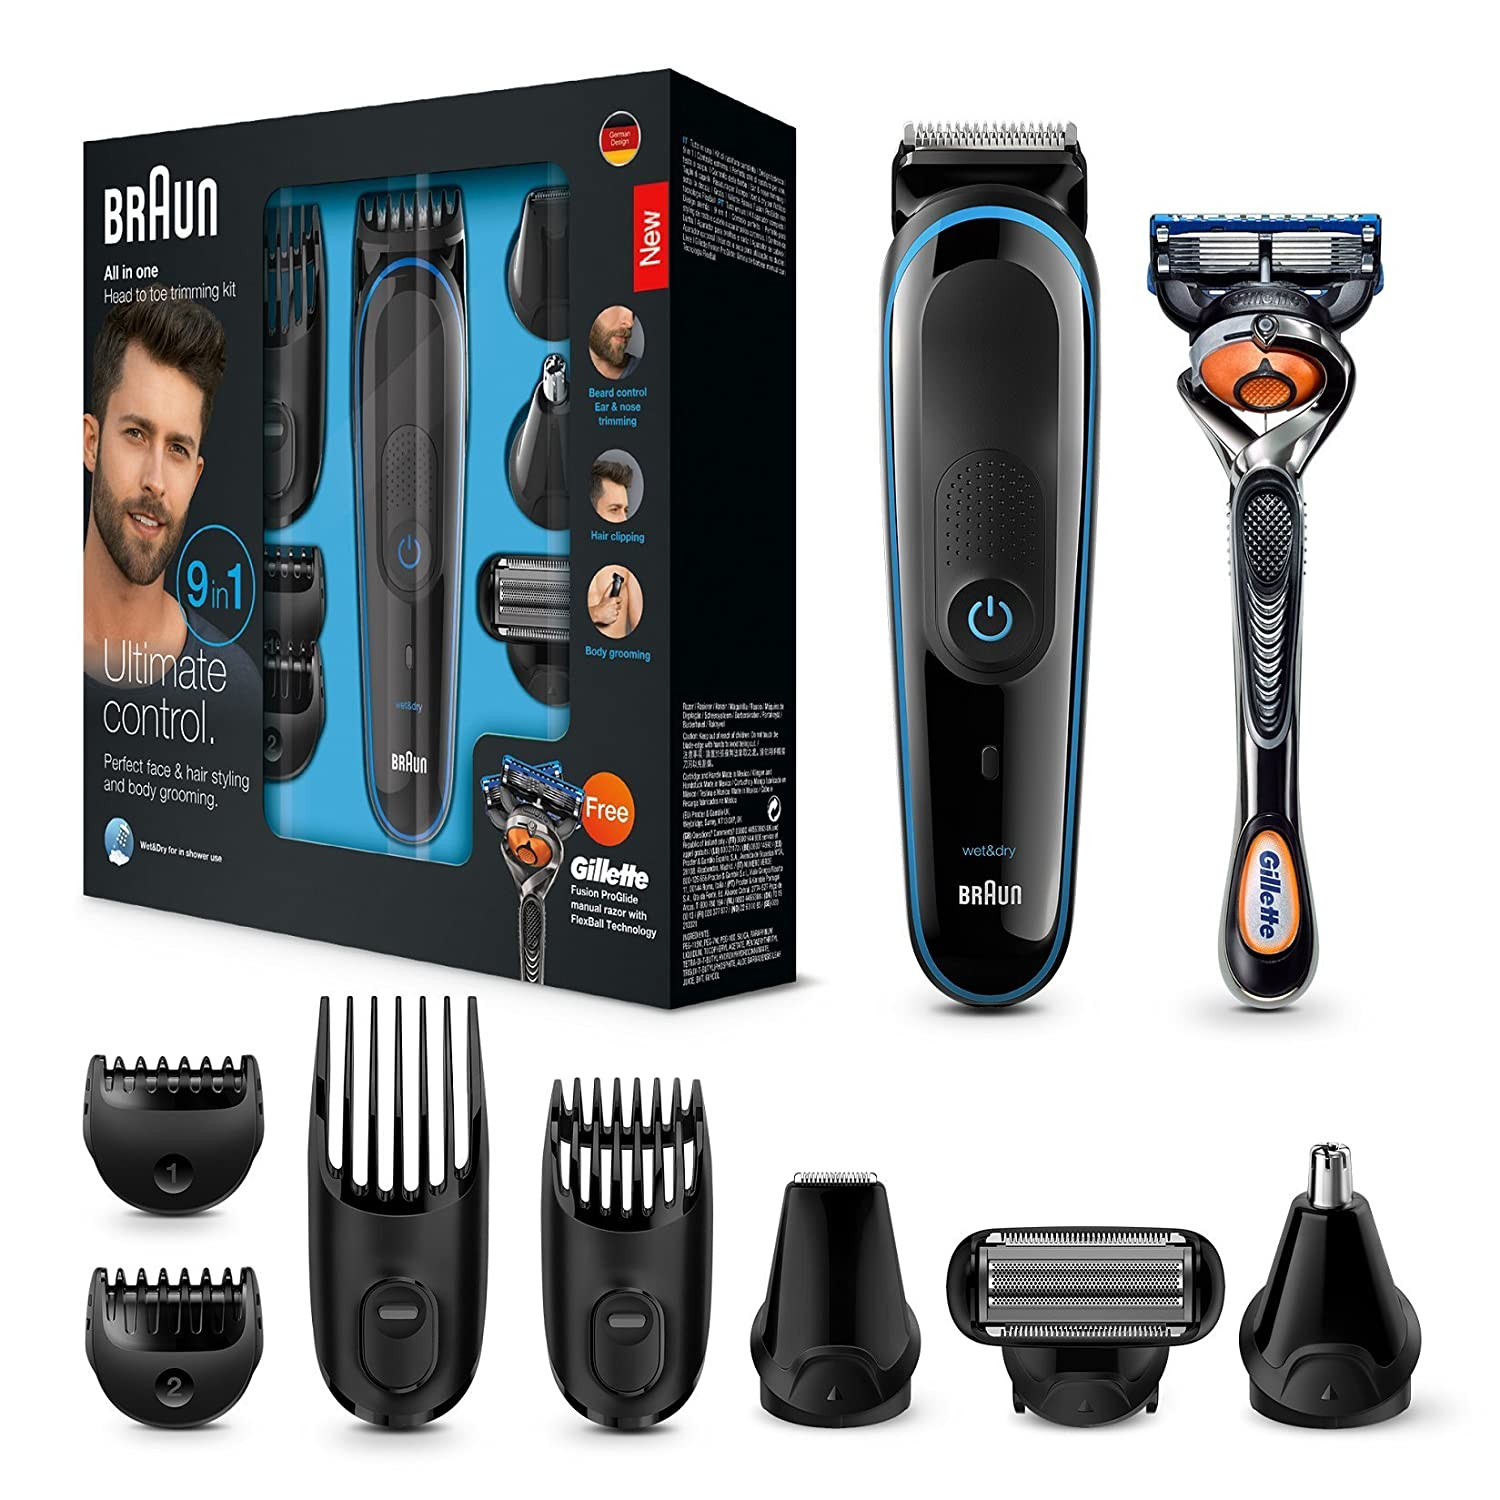 Braun Multi Grooming Kit MGK3085 9-In-1 Precision Trimmer for Beard and Hair Styling with Gillette Fusion Proglide Razor, Black/Blue Procter & Gamble 4210201216285